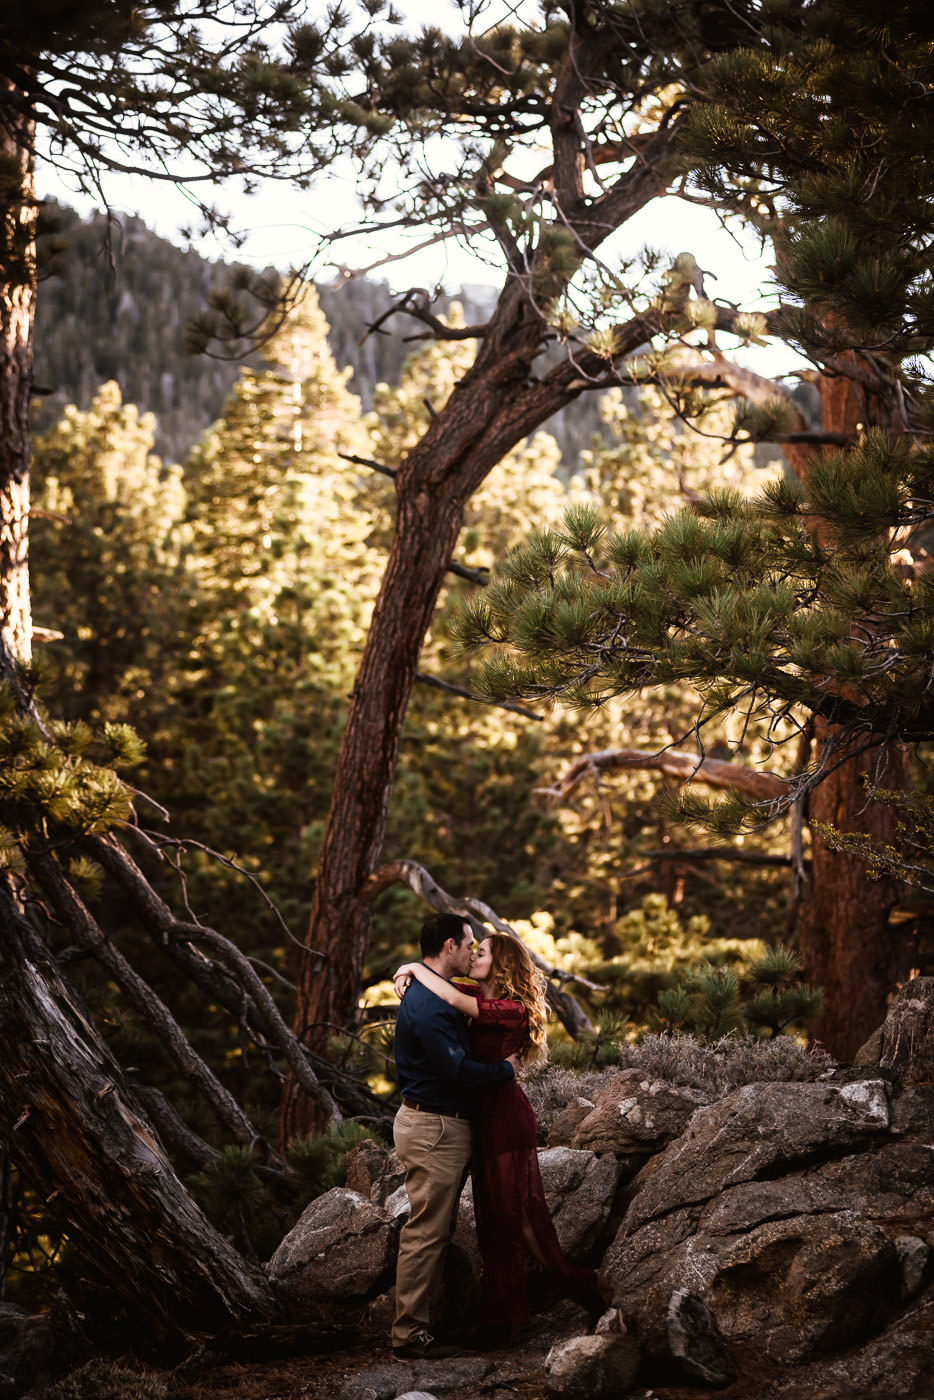 Beautiful portrait of a couple kiss at sunset in the woods of California's mountians.